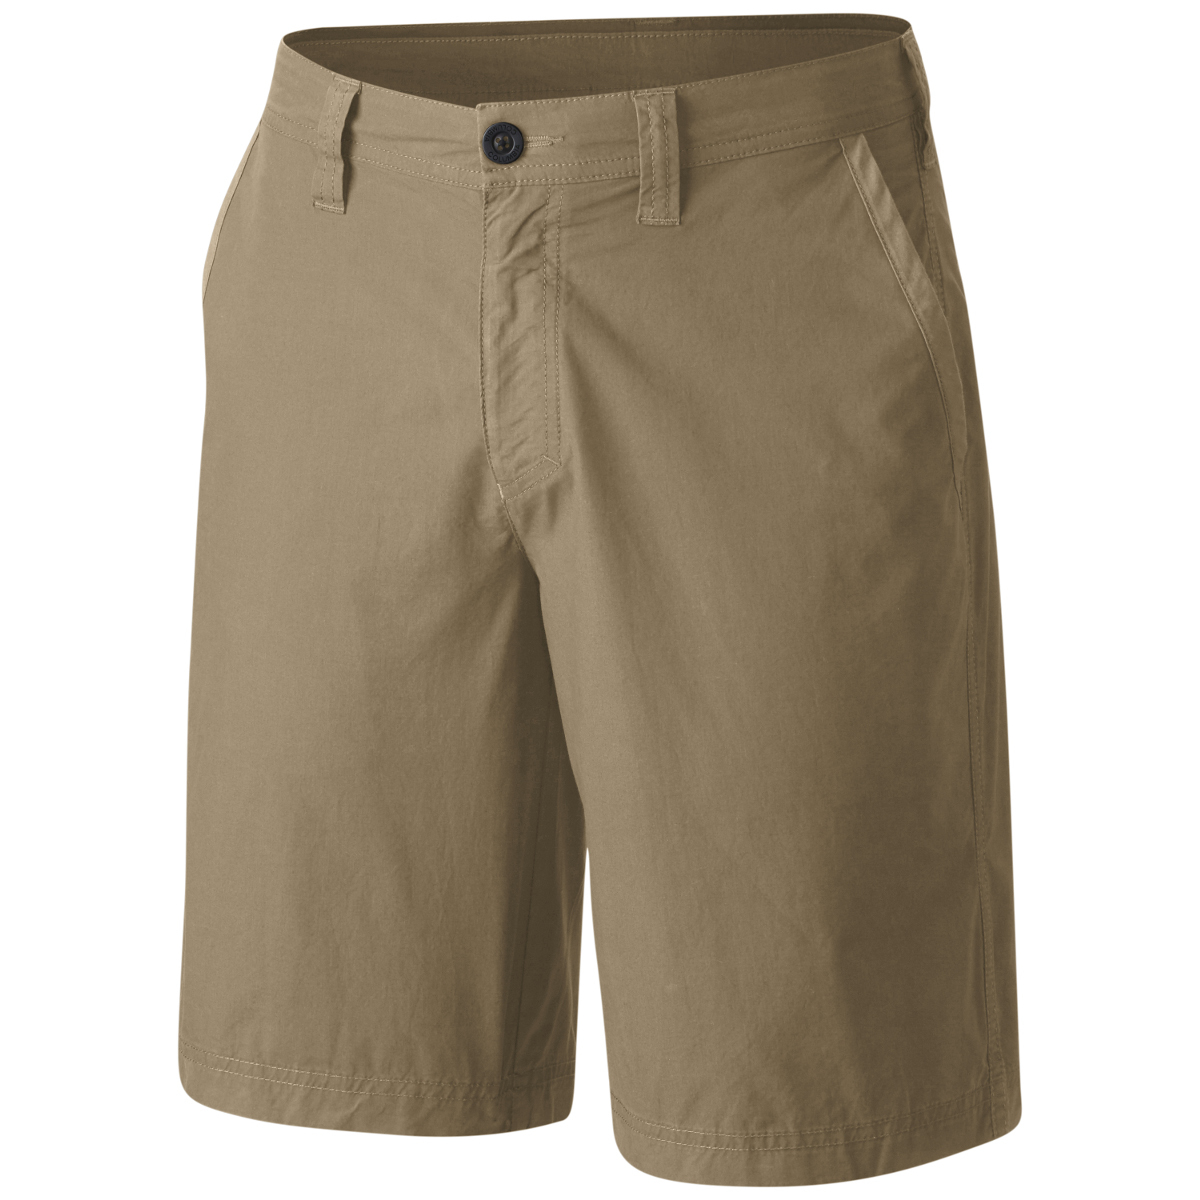 Columbia Men's Washed Out Shorts - Brown, 32